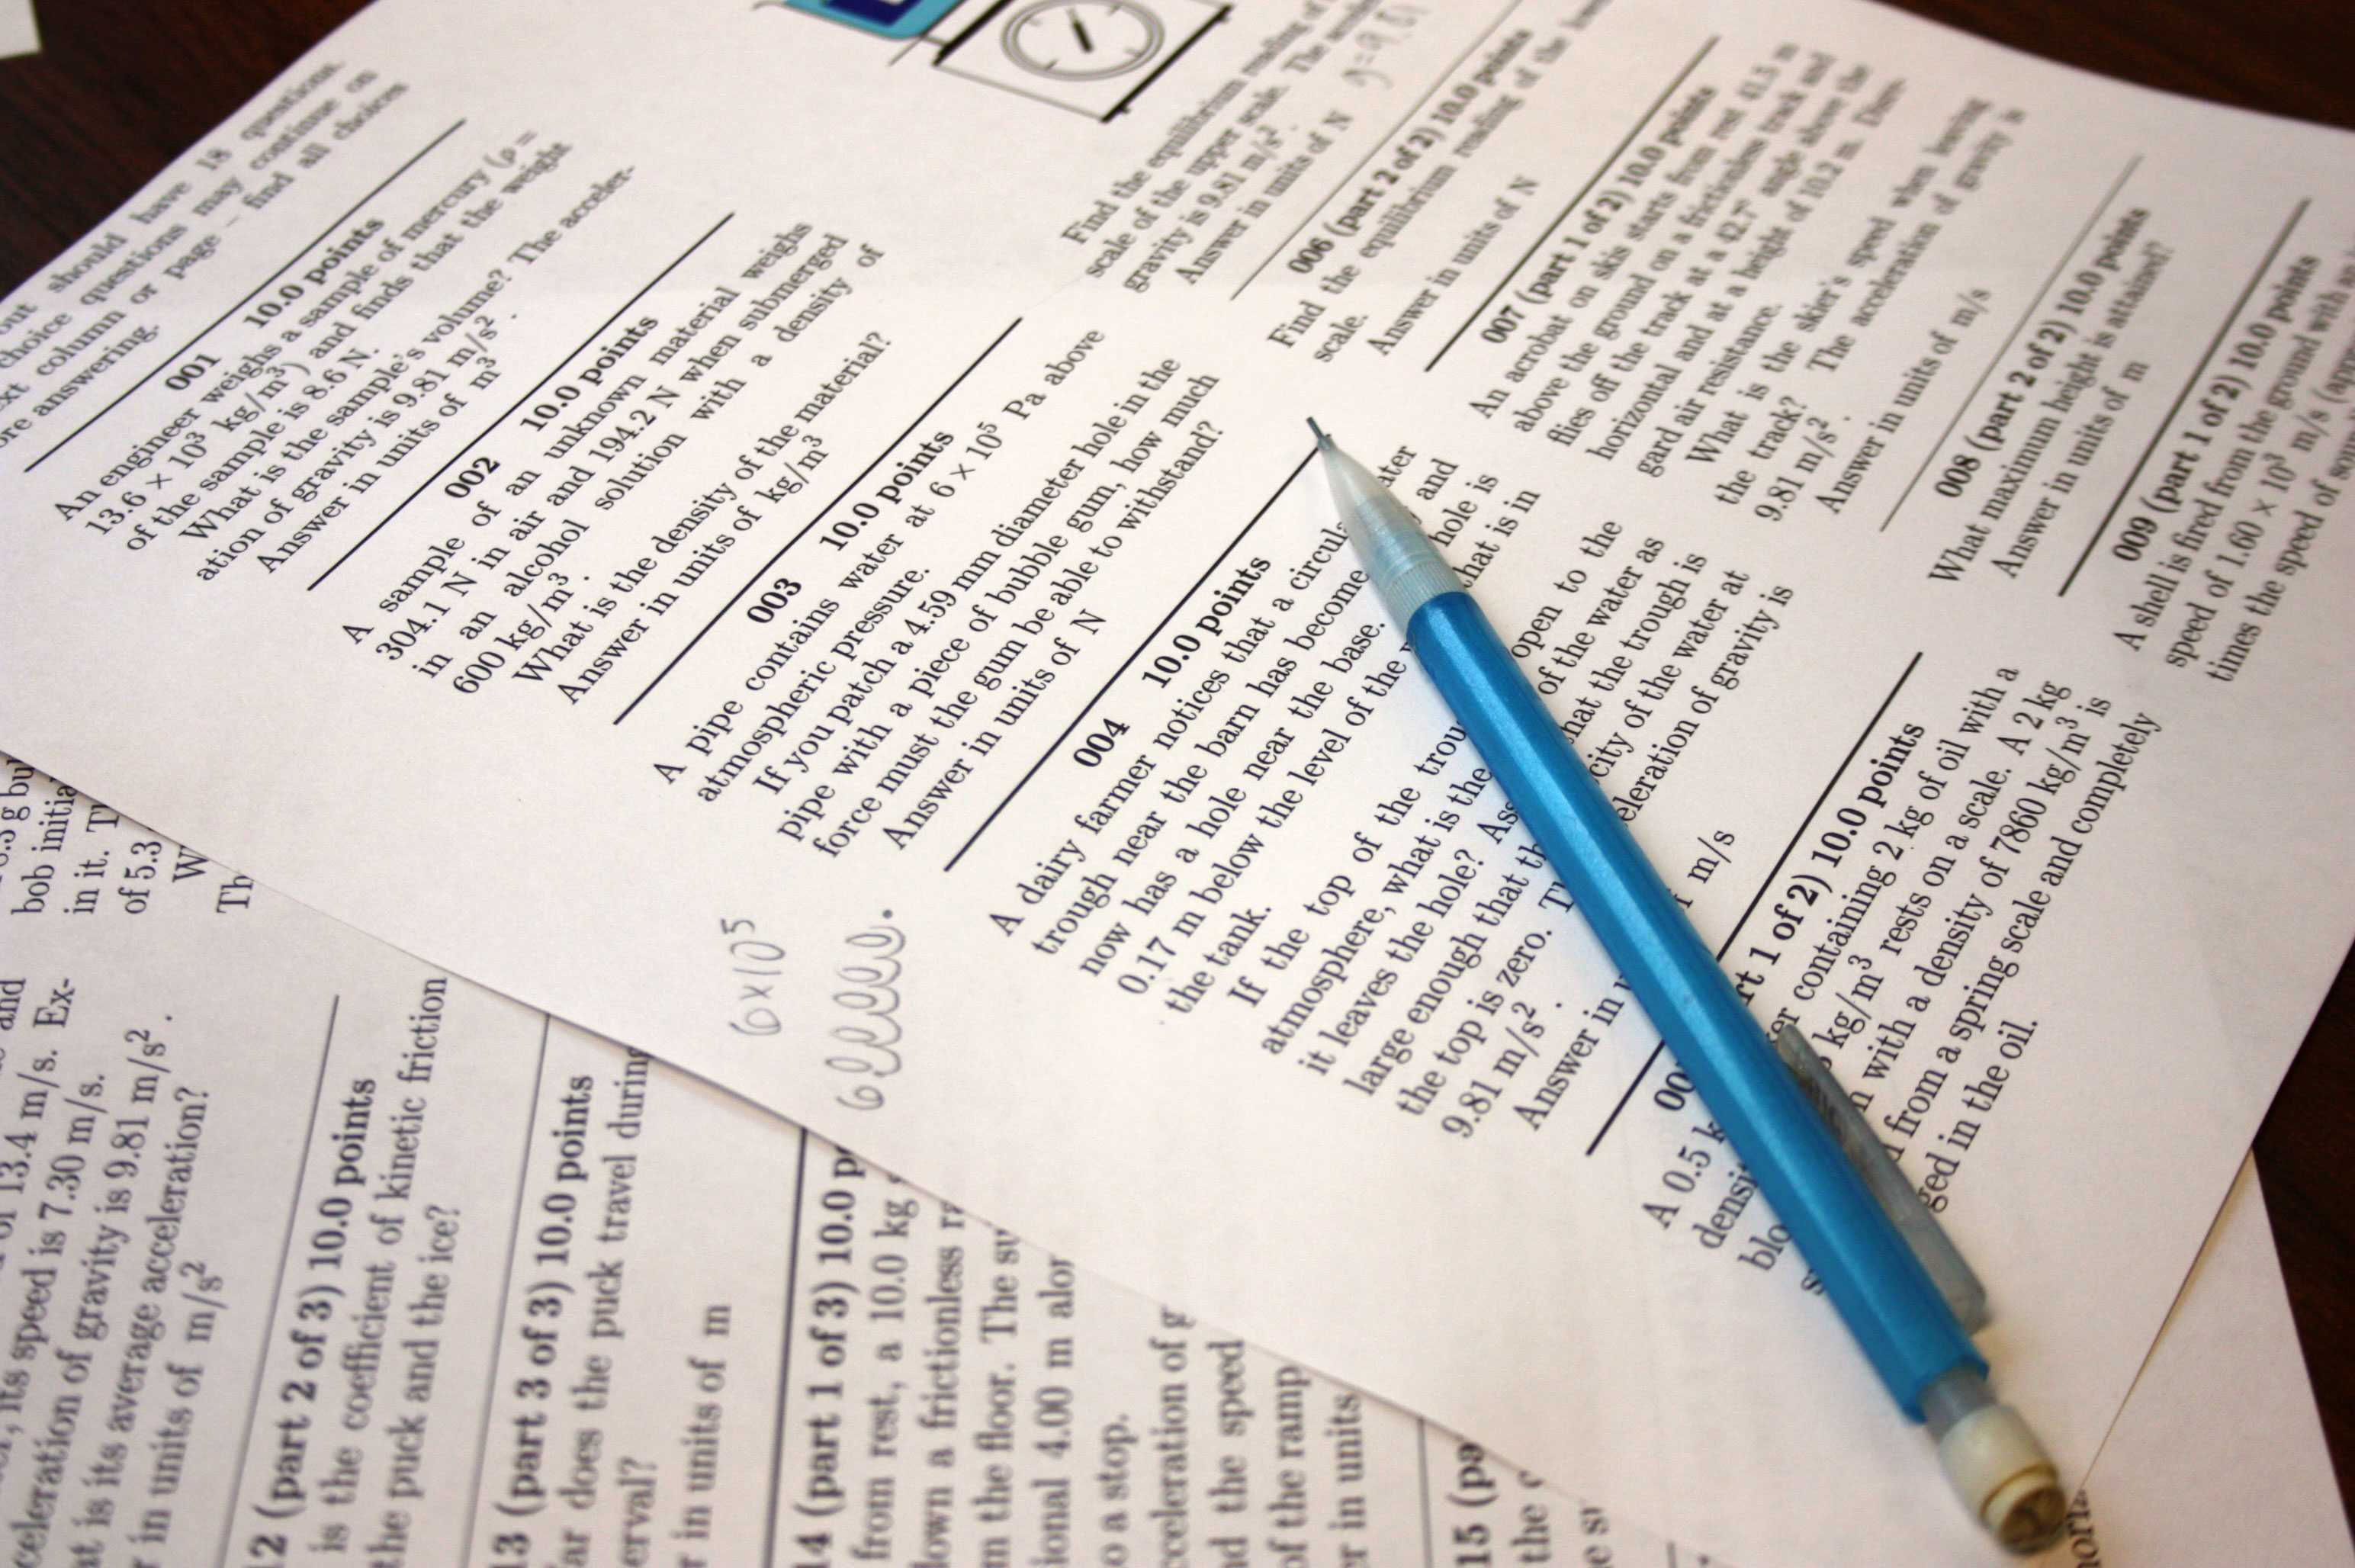 Even though some homework may be online, students can usually print it out to work on a hard copy.